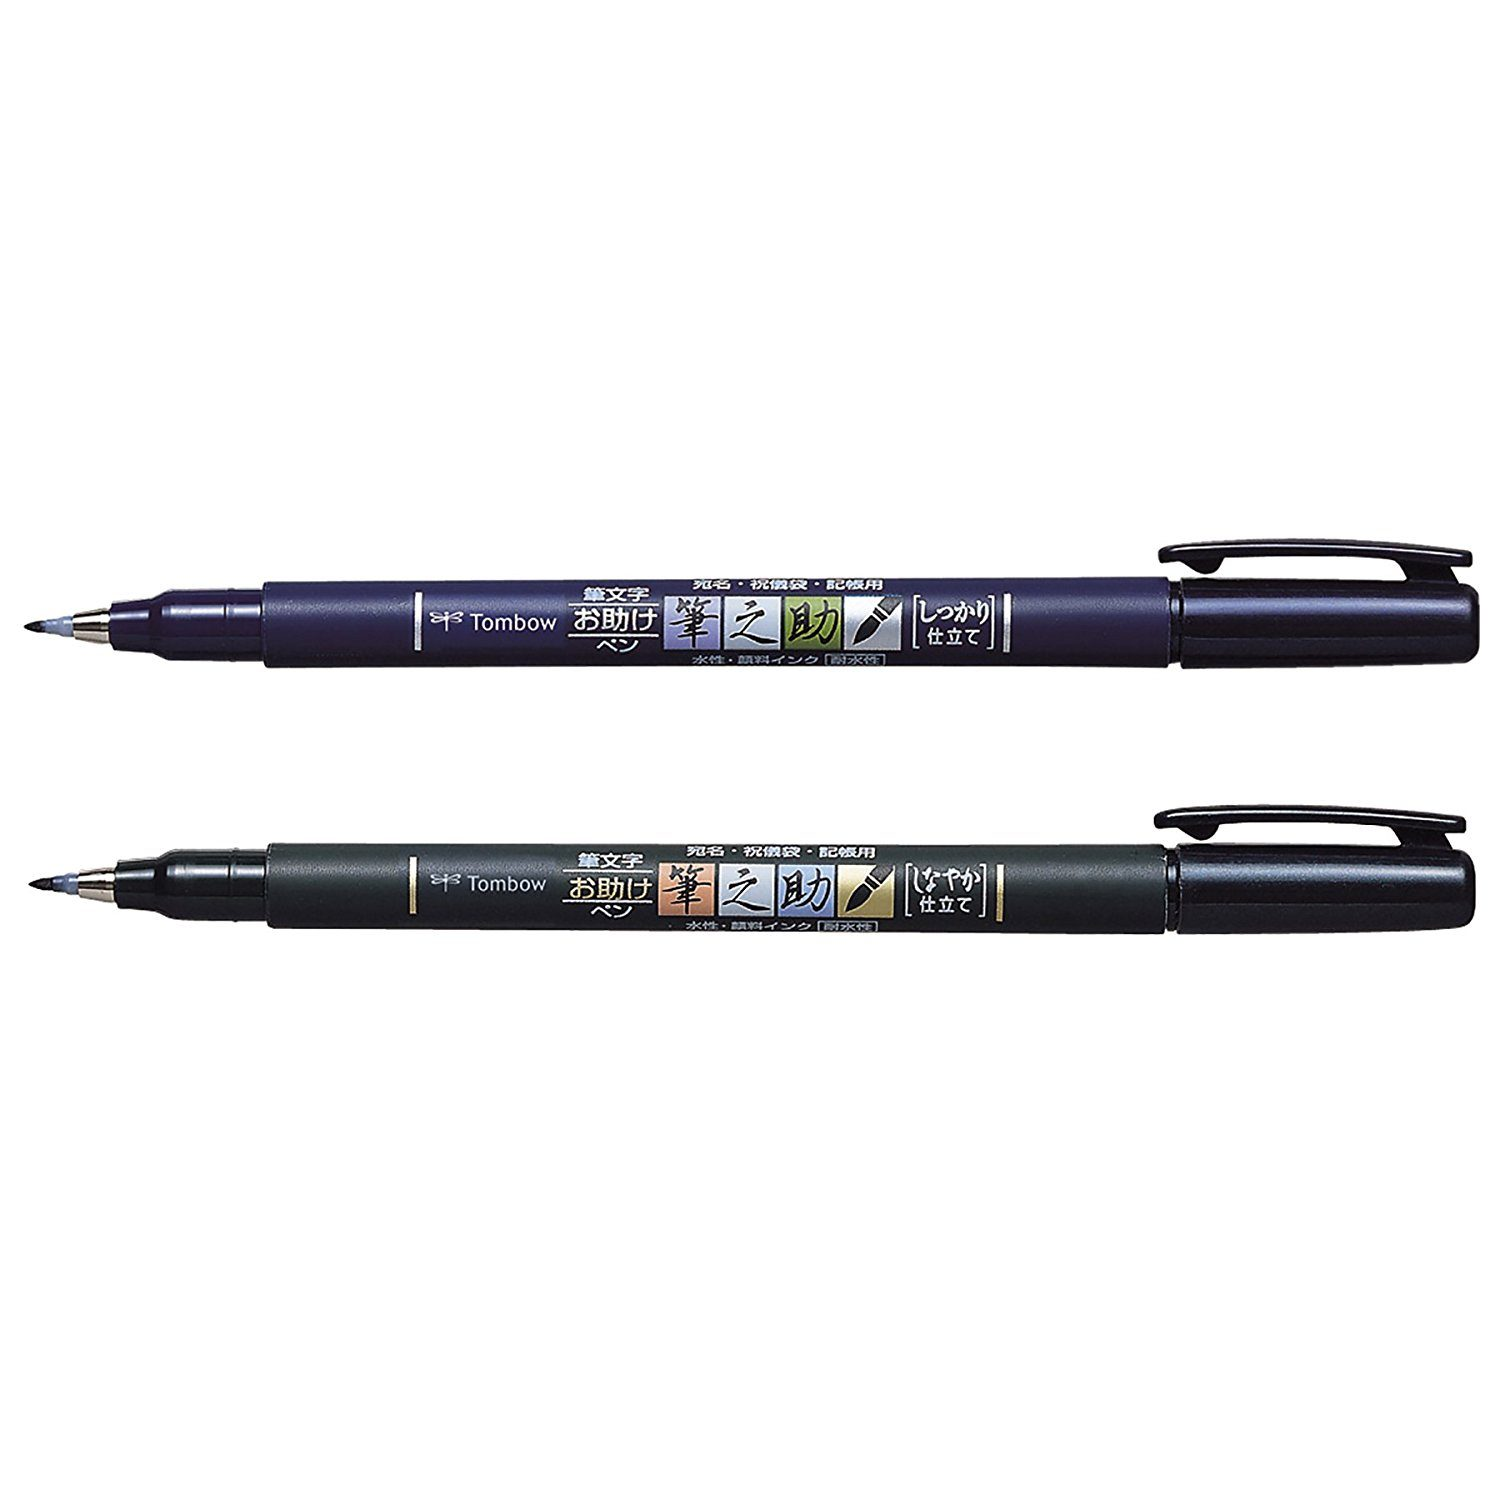 Hard and Soft Nib Fude Pens